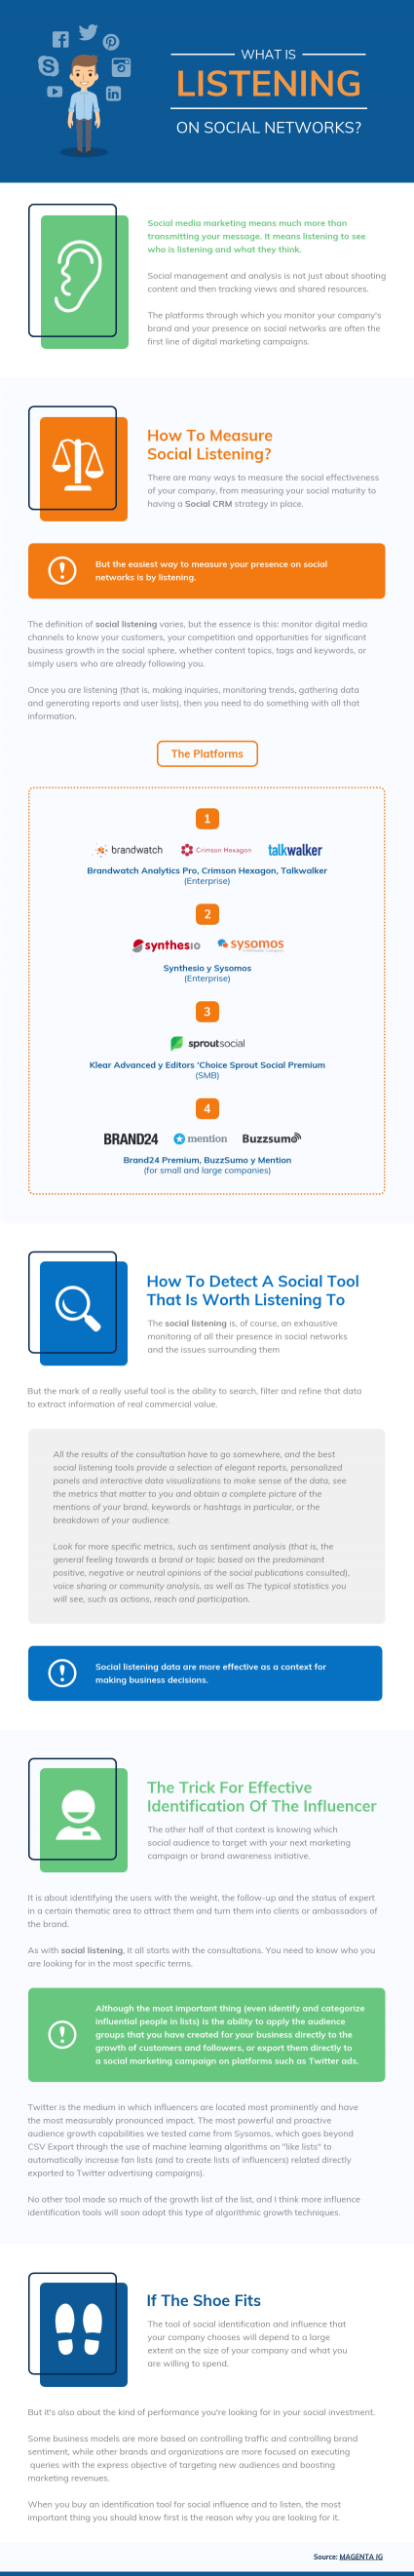 Listening On Social Networks Infographic Template